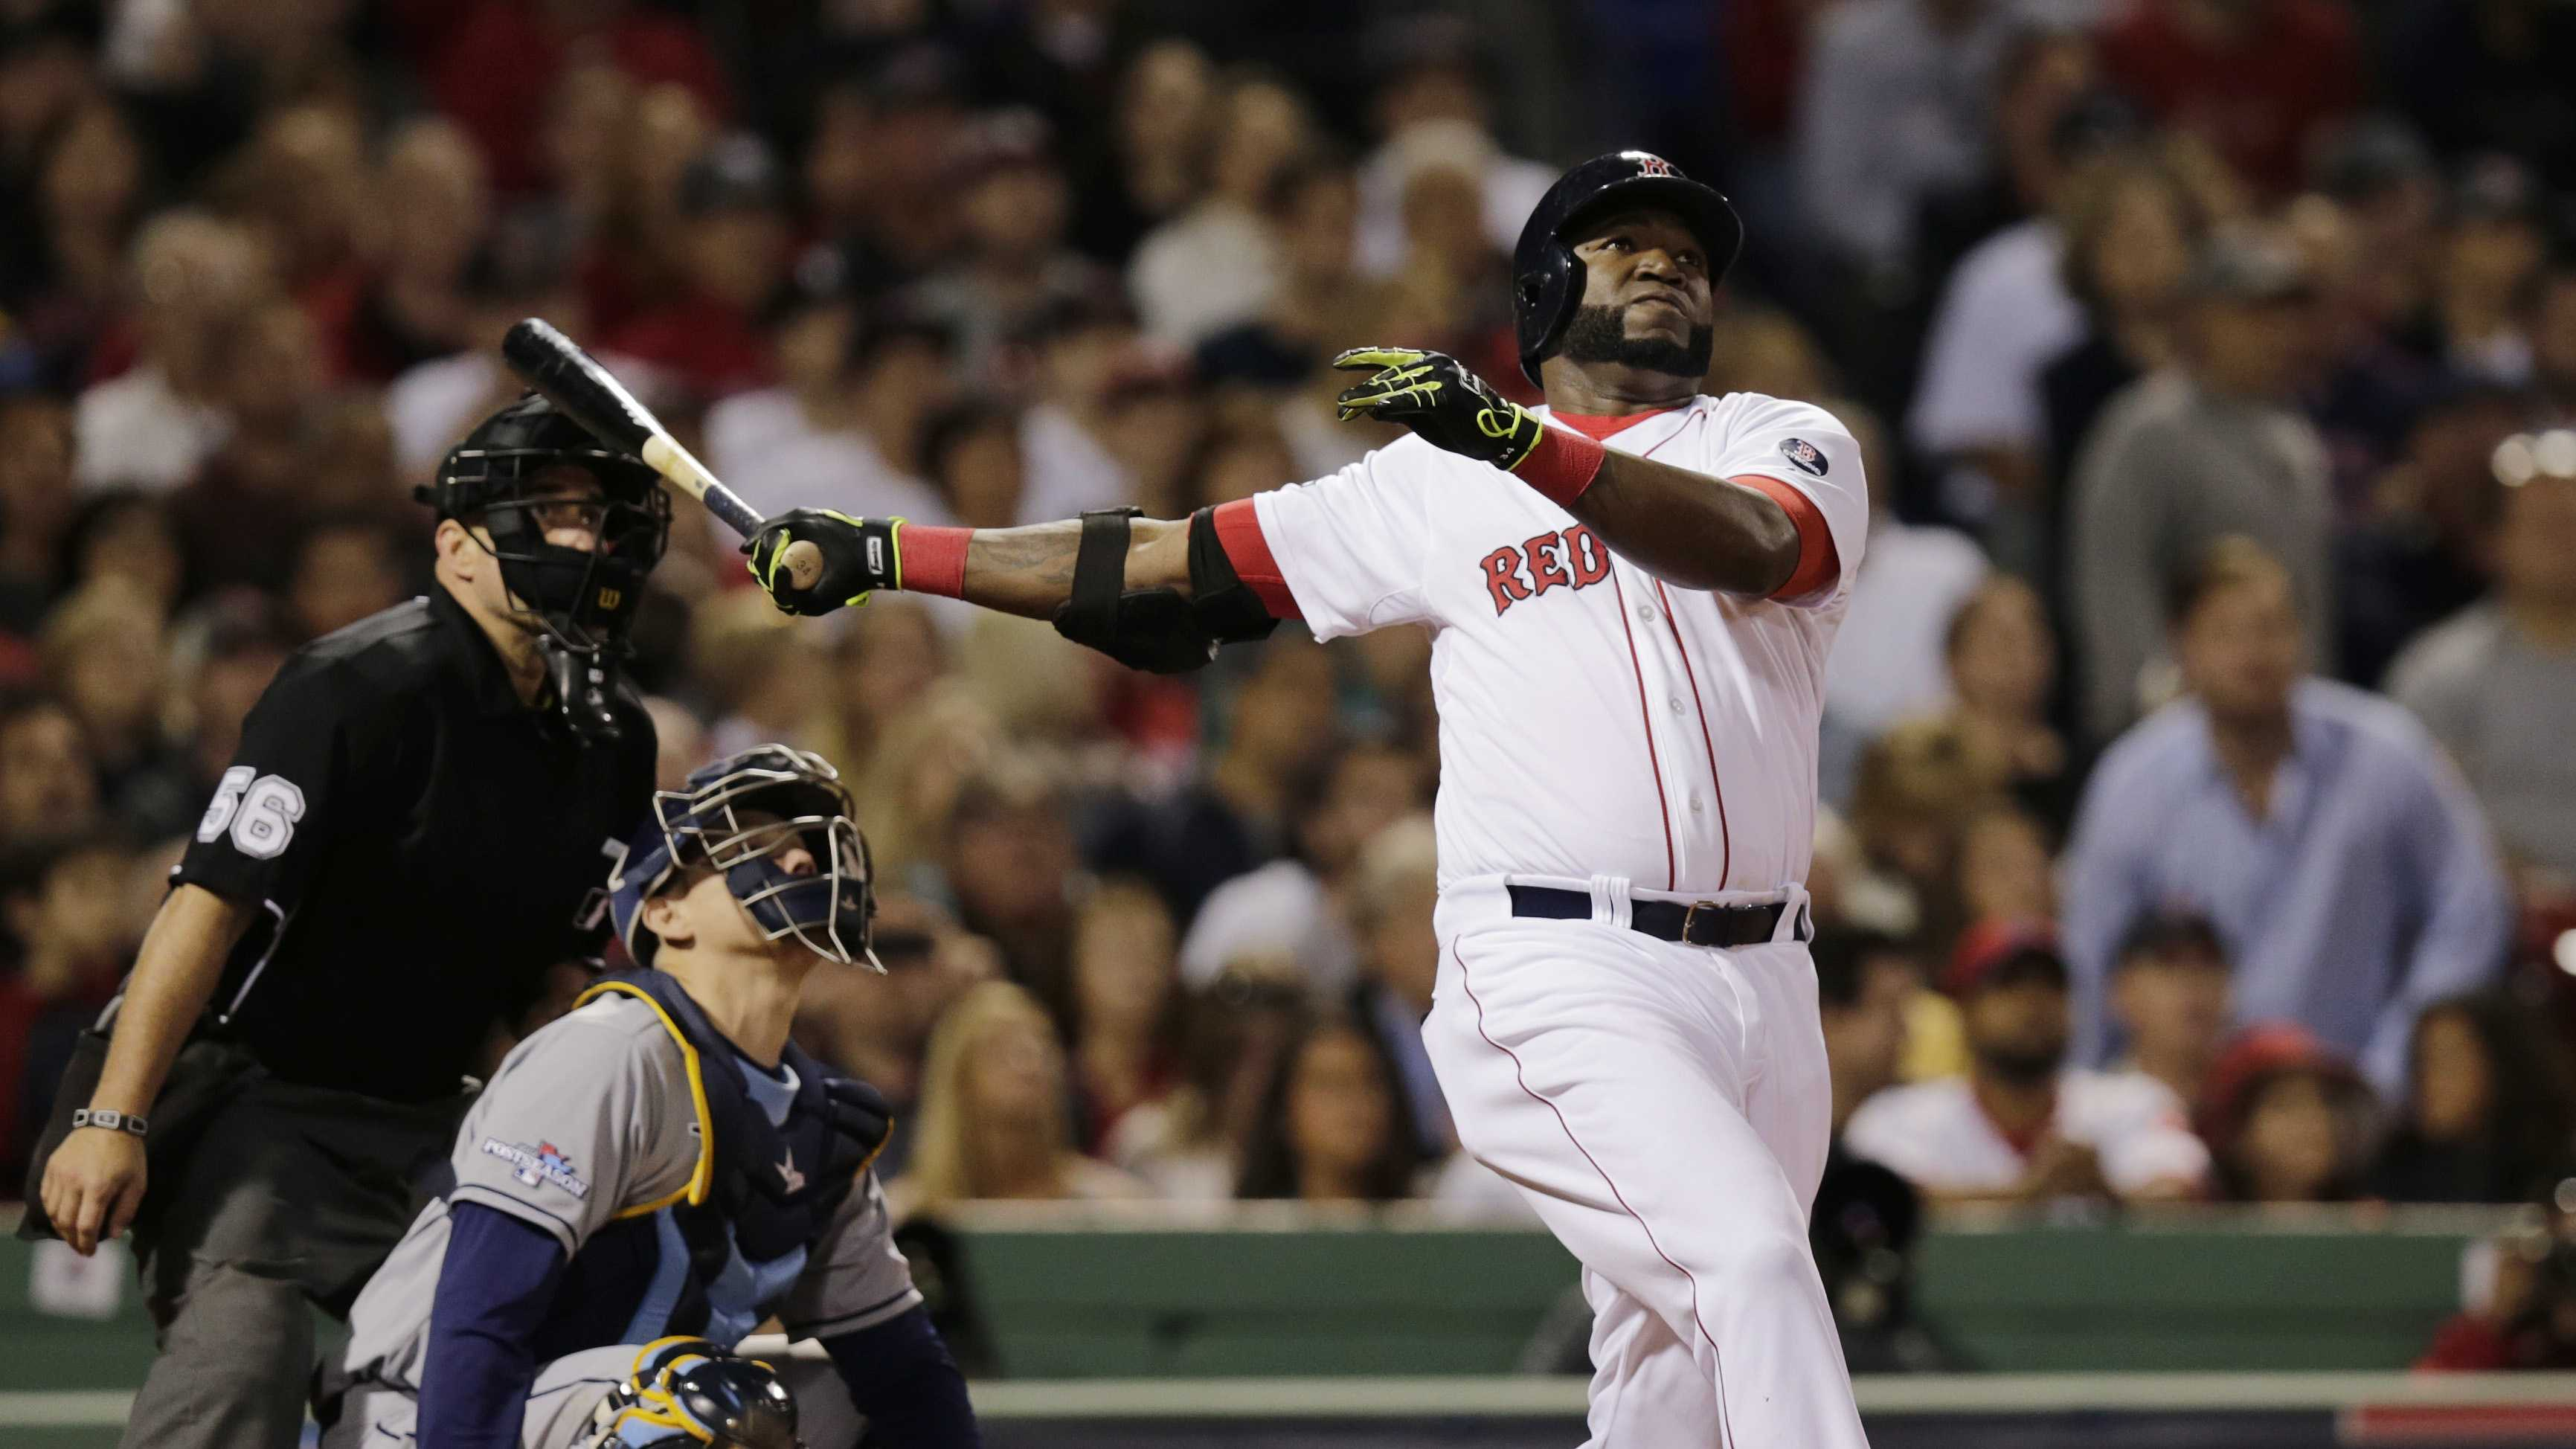 Boston Red Sox designated hitter David Ortiz watches his second home run of the game off Tampa Bay Rays starting pitcher David Price, in front of Rays catcher Jose Molina in the eighth inning in Game 2 of baseball's American League division series, Oct. 5, 2013, in Boston.